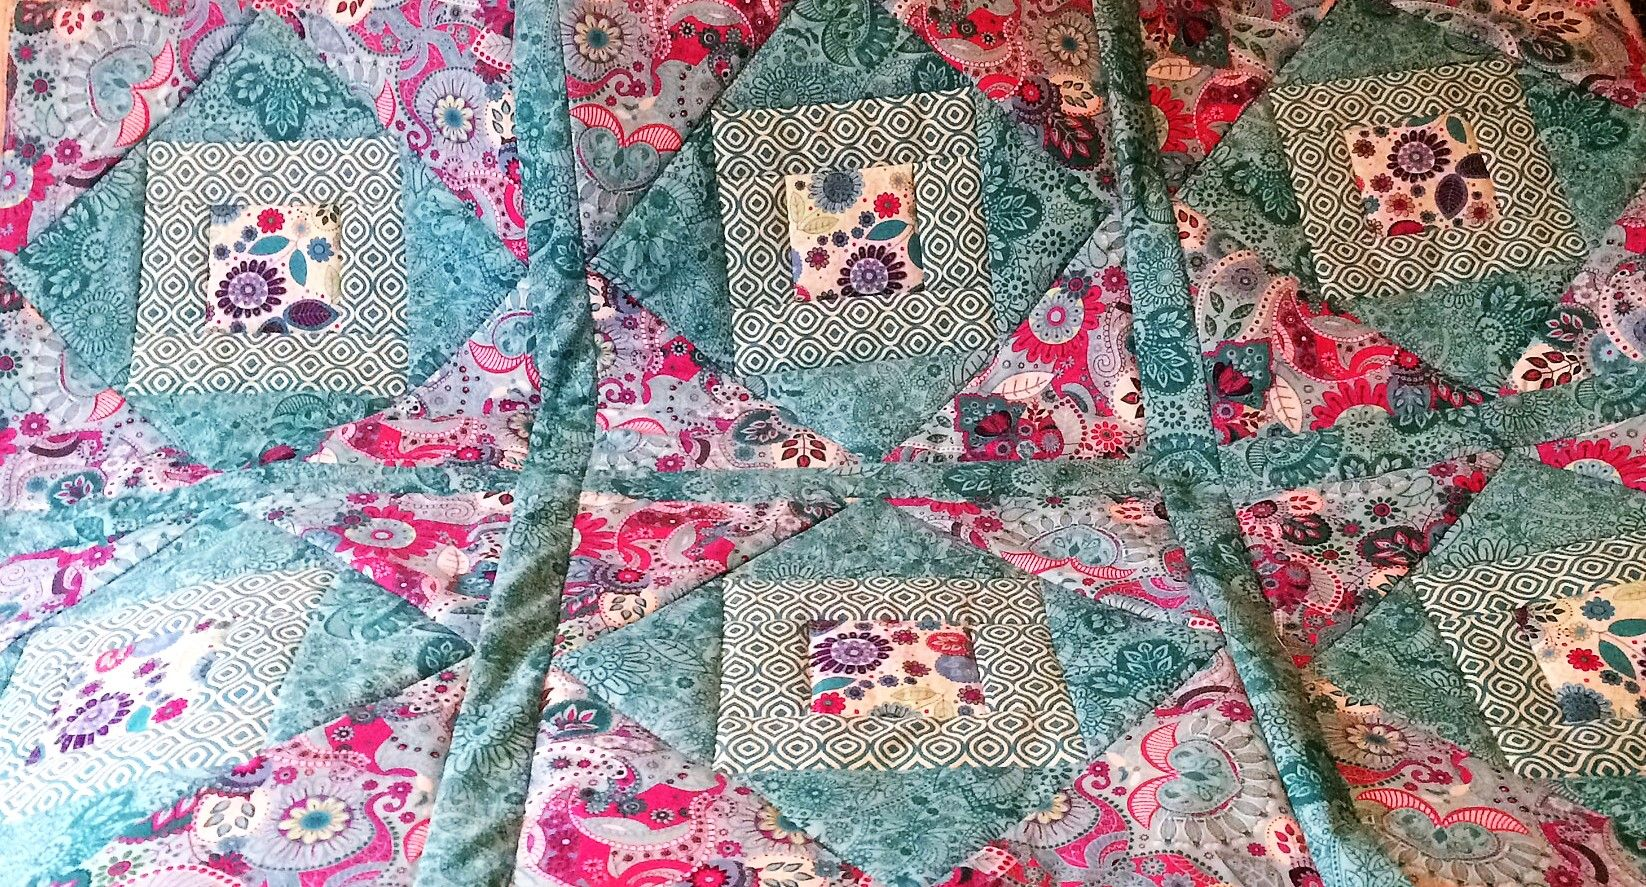 Debby's Patch wendy's quilt